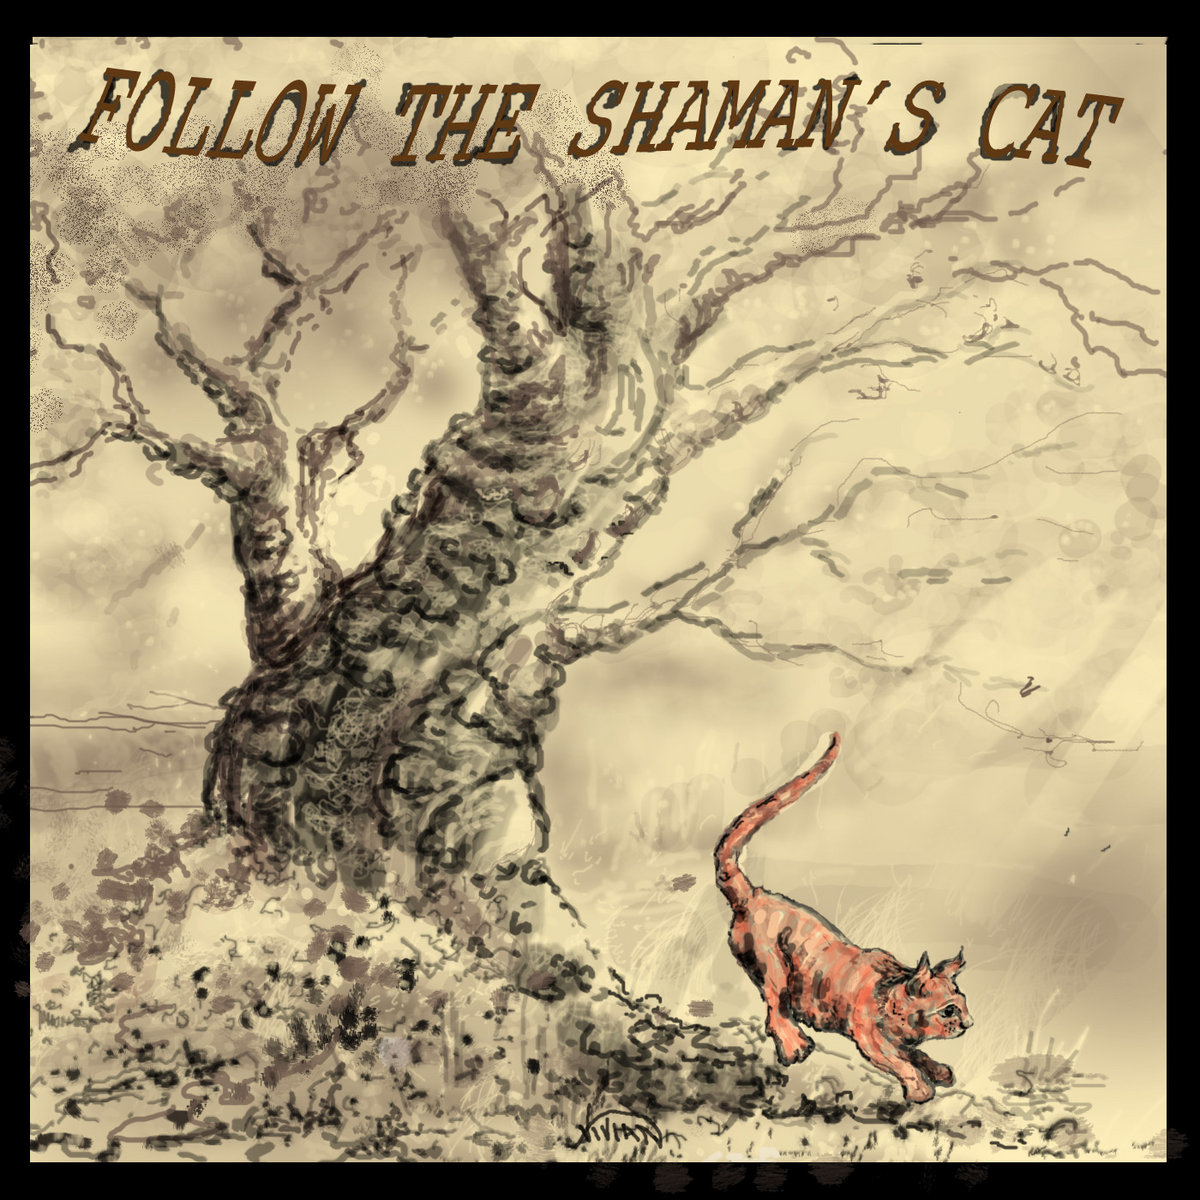 Follow the Shaman's Cat | Intergalactic Tea Company